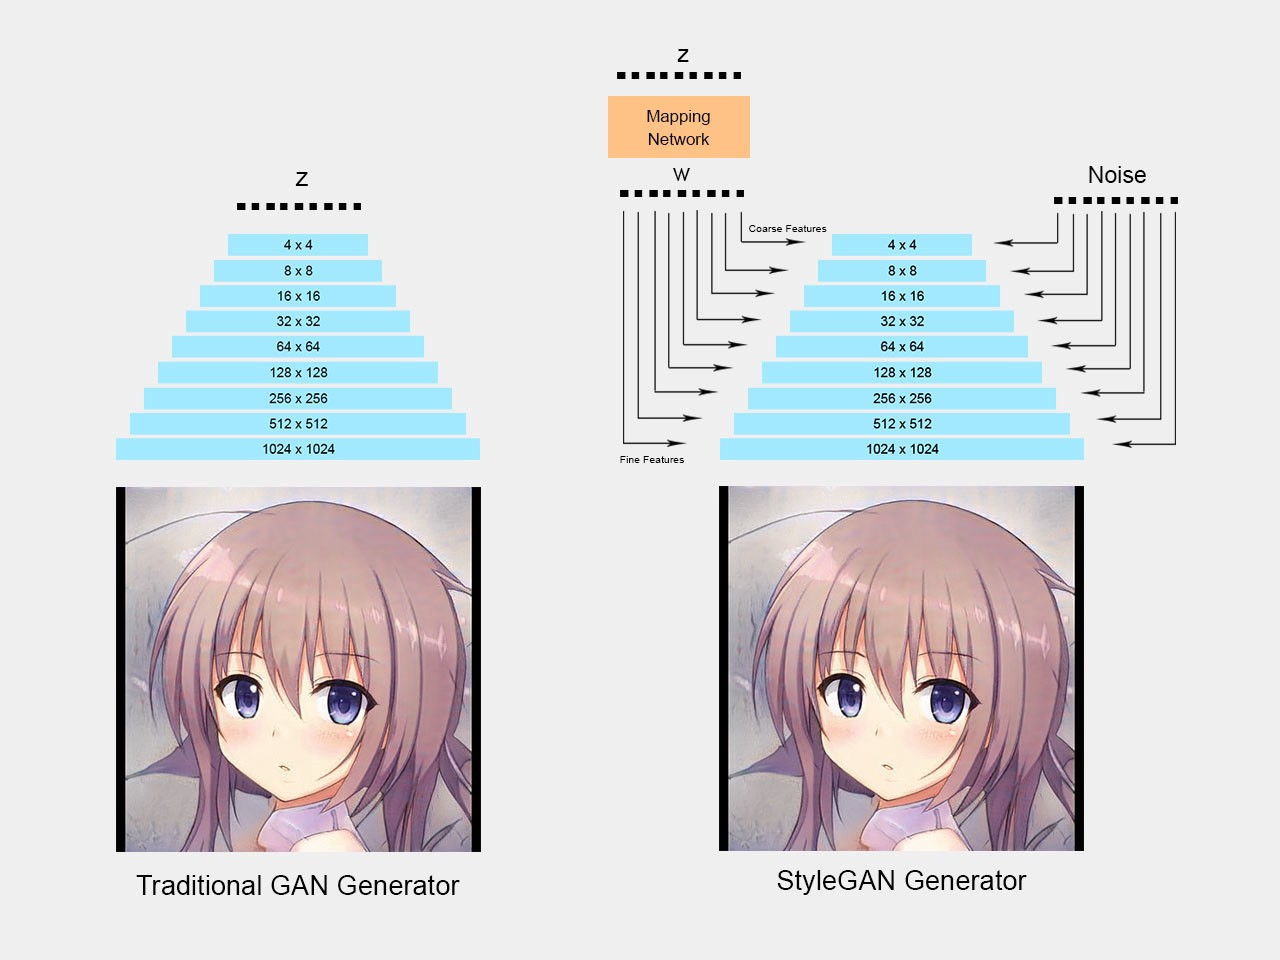 Generating Anime Characters With Stylegan2 By Fathy Rashad Towards Data Science